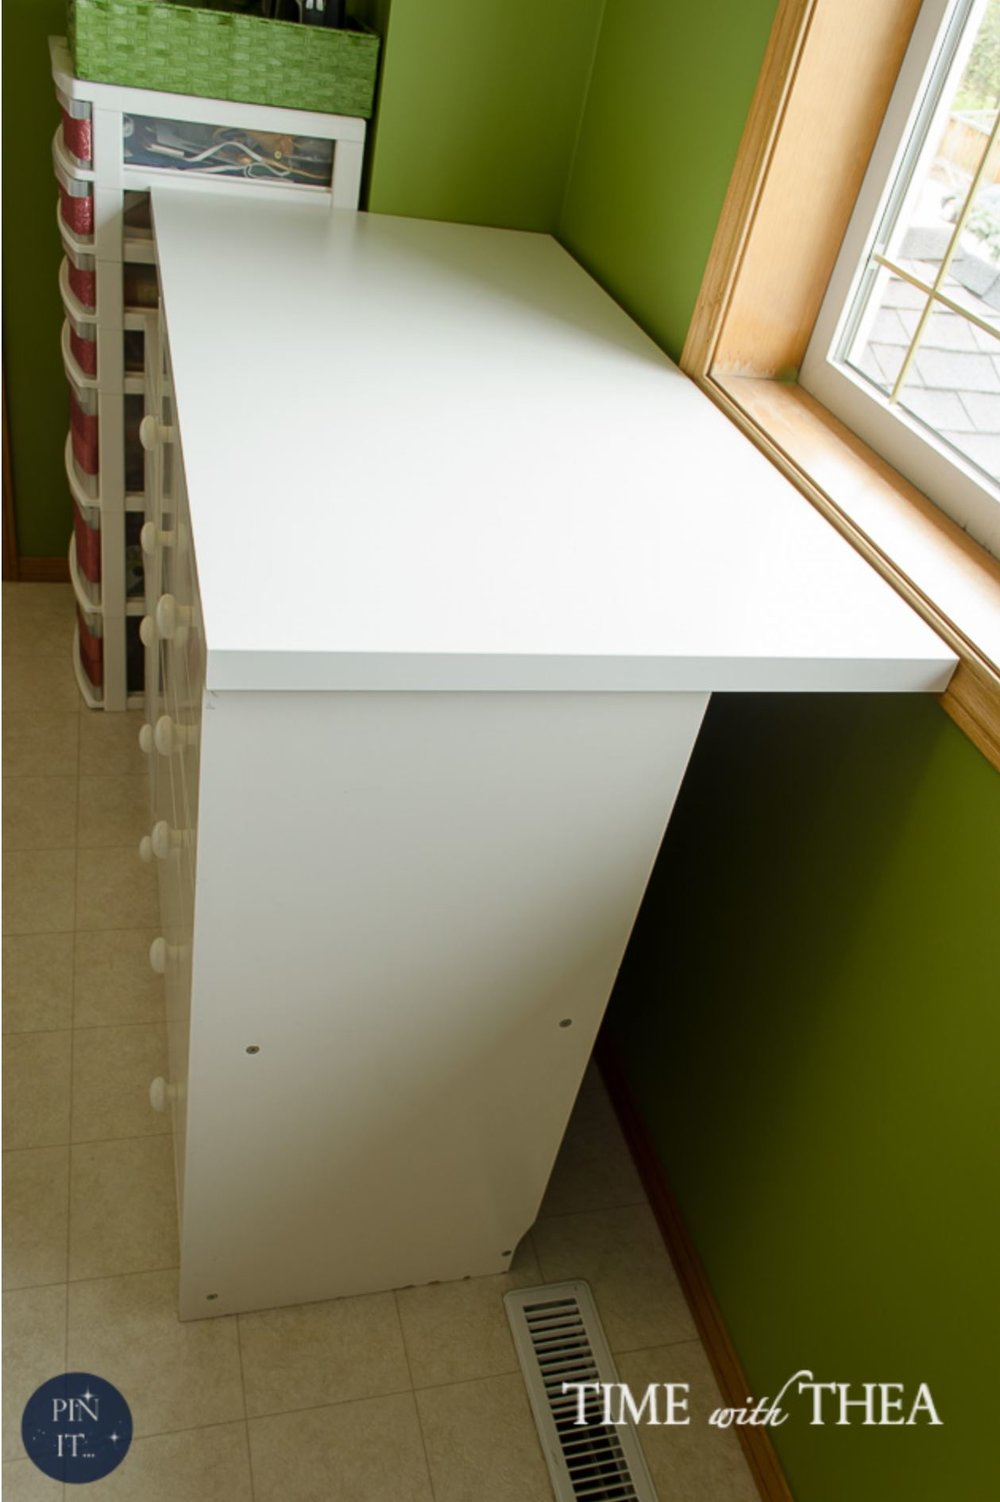 DIY concealed storage for large items and other IKEA hack home organizing ideas.